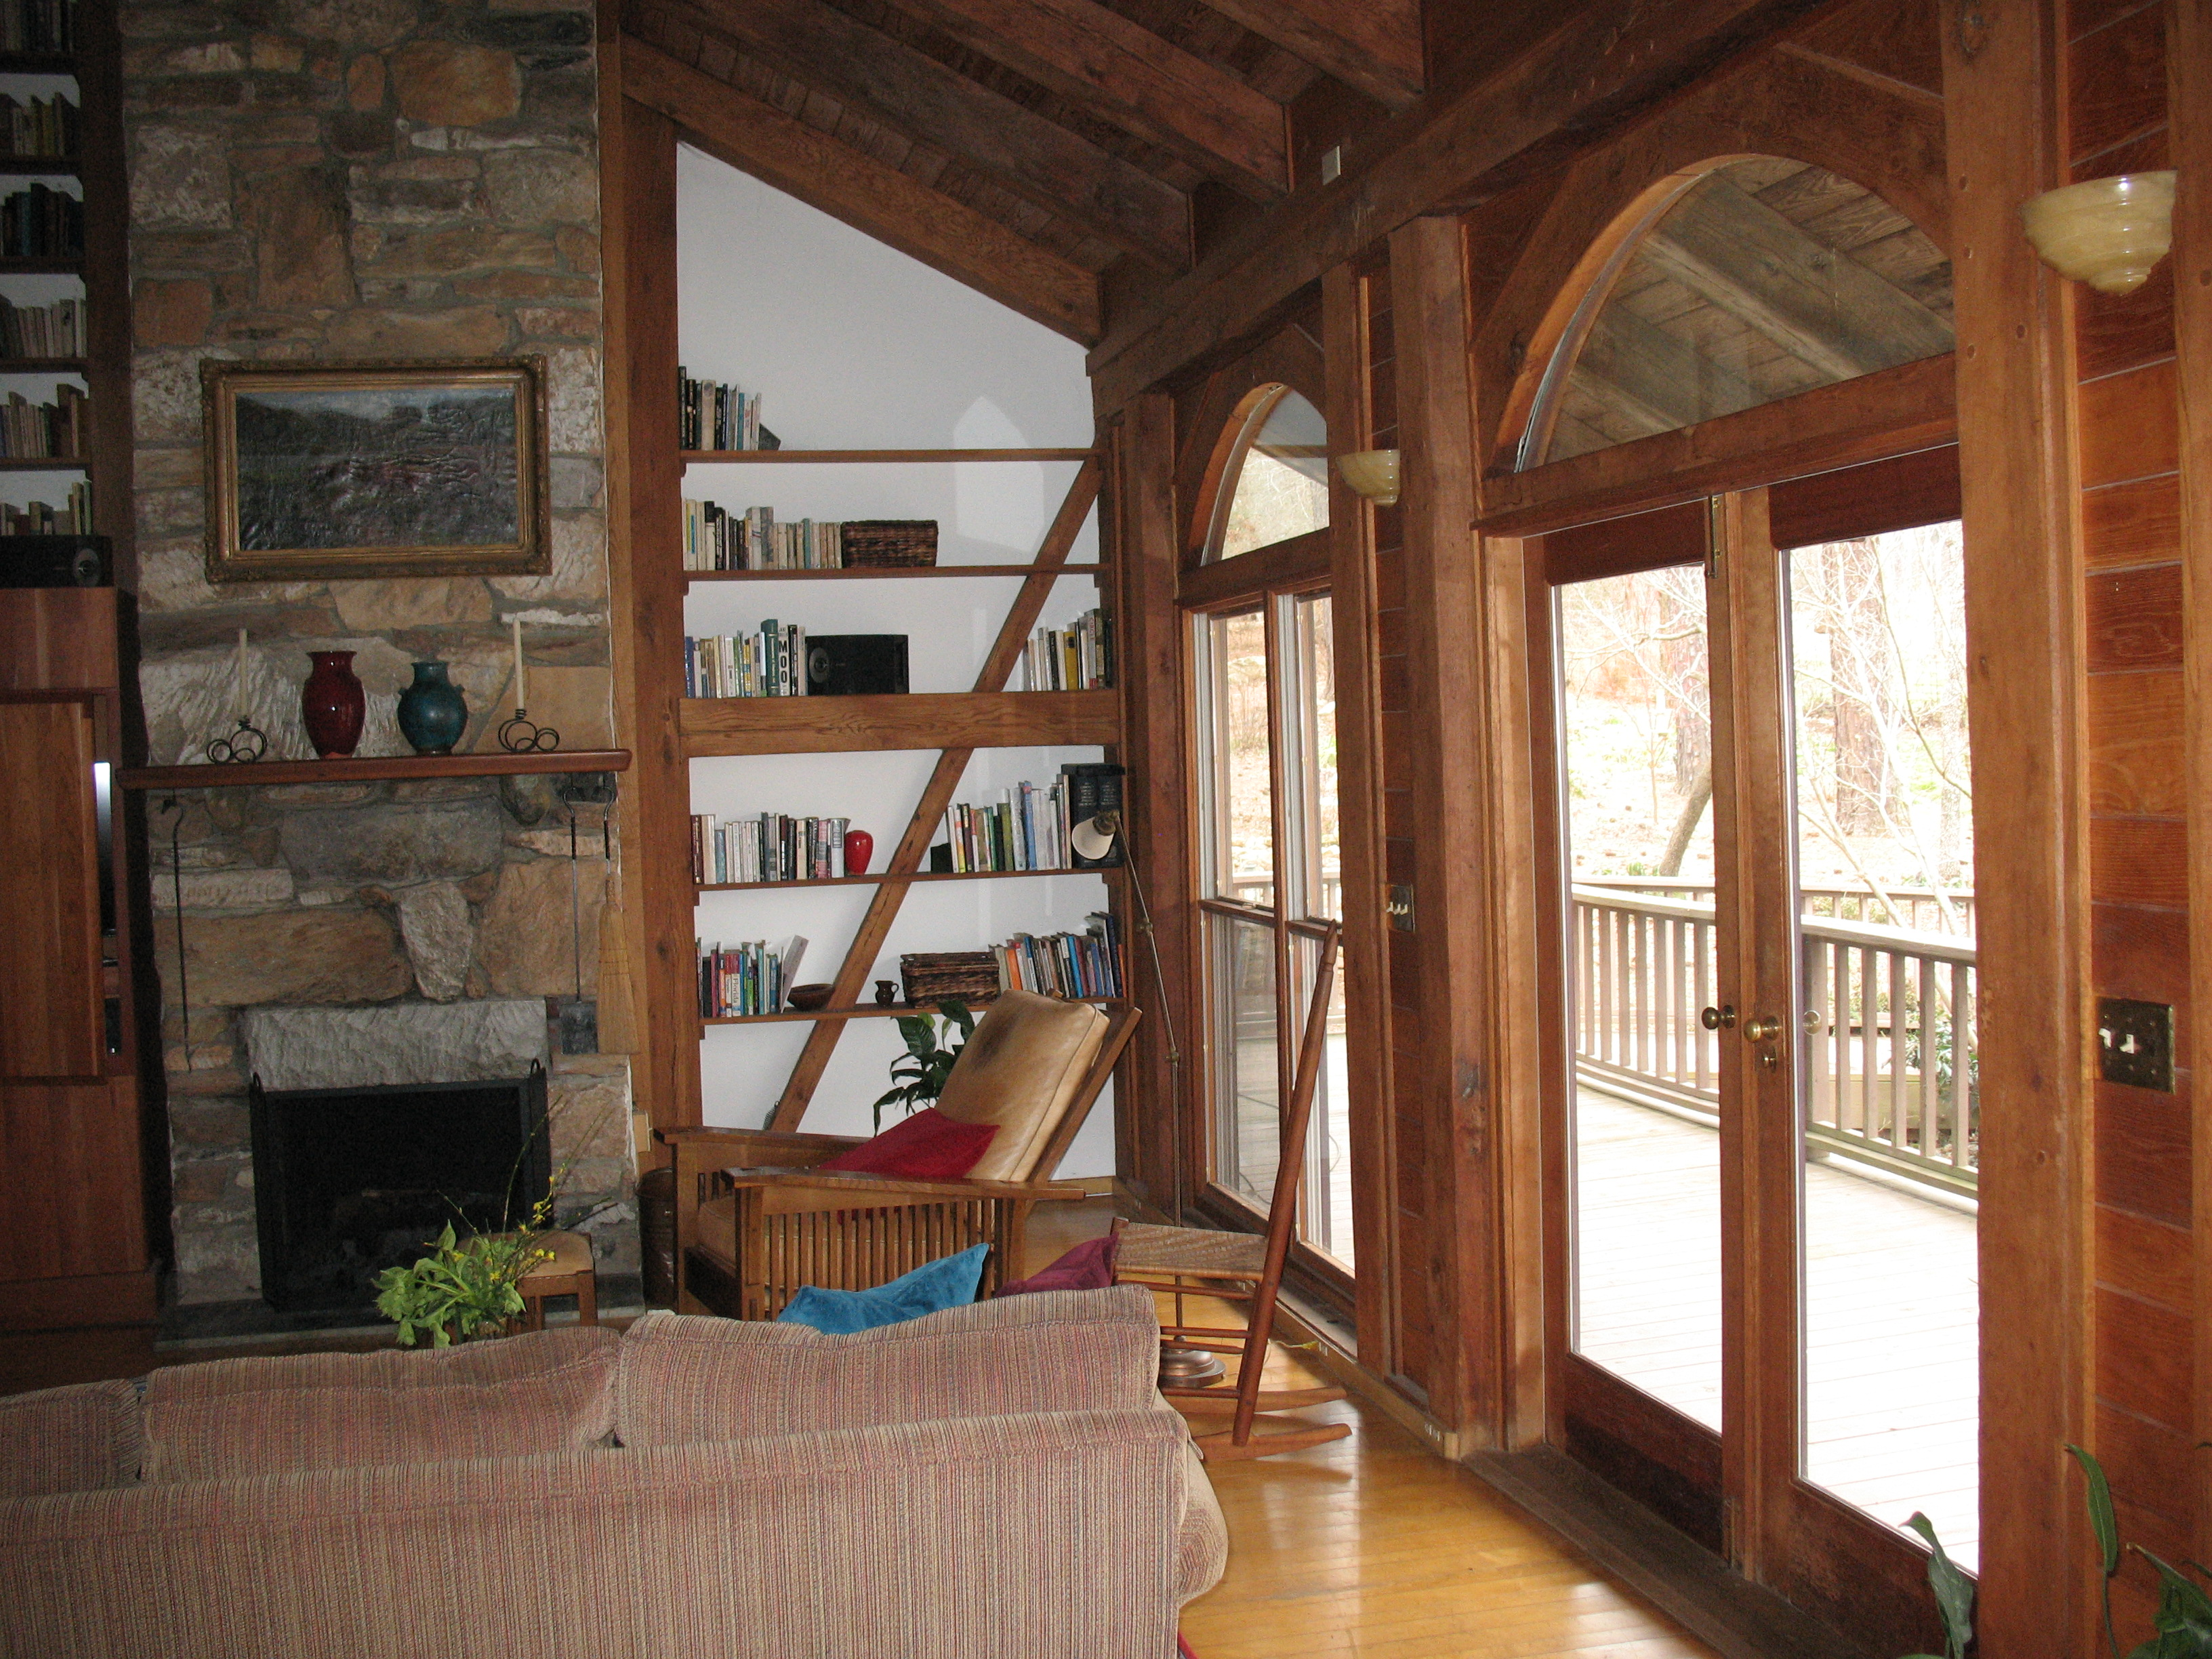 Timber Frame Joinery In My House Jim Wallace - Living room shows